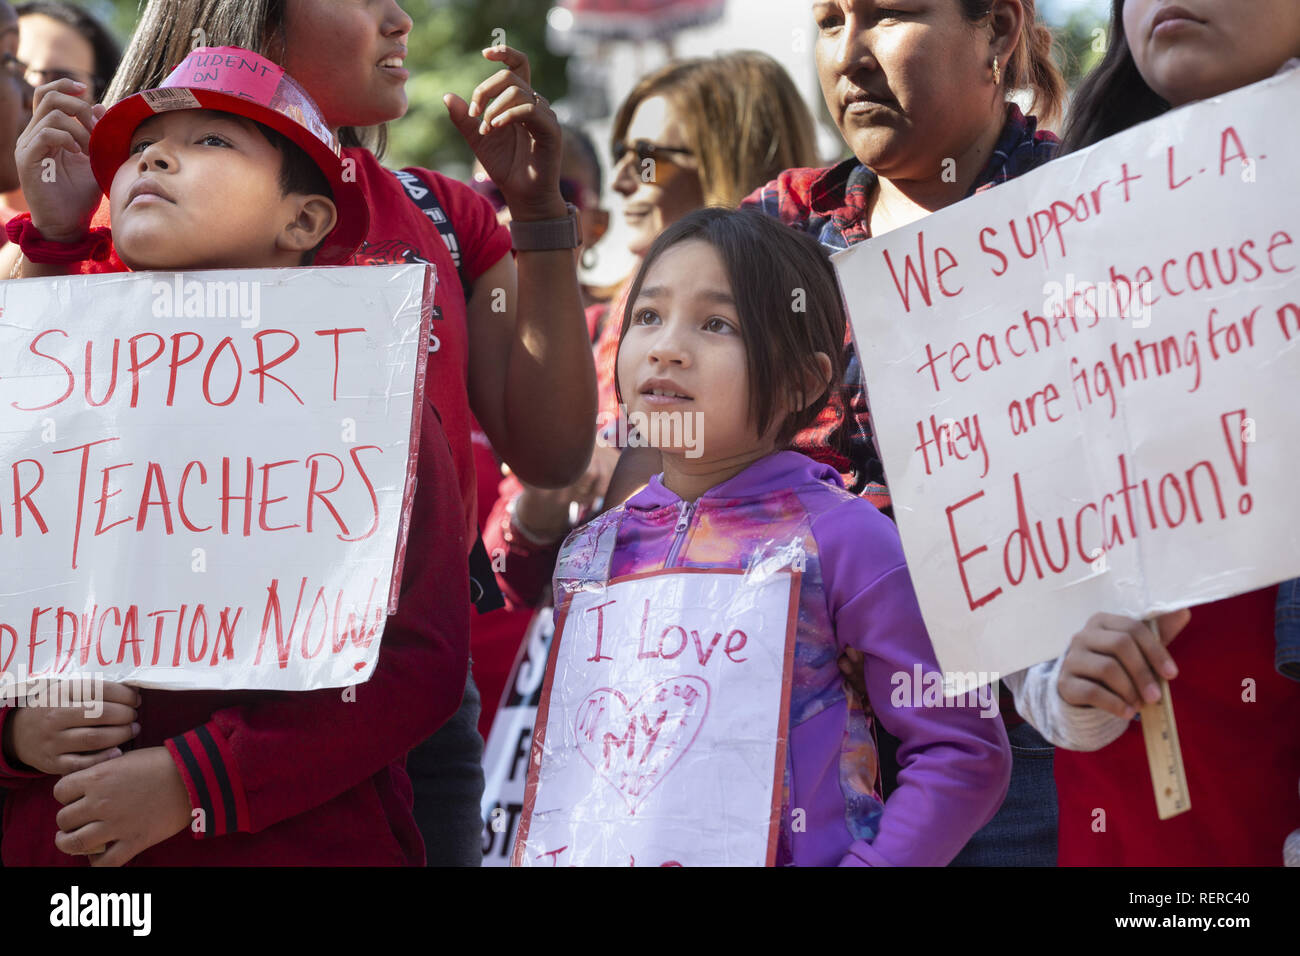 Los Angeles, California, USA. 22nd Jan, 2019. Priscilla, a 2nd grade student at Marlton School for deaf and hard of hearing students, watches speakers at a downtown Los Angeles rally after an agreement between UTLA and the LAUSD was reached Tuesday, January 22, 2019. Credit: Allison Zaucha/ZUMA Wire/Alamy Live News - Stock Image